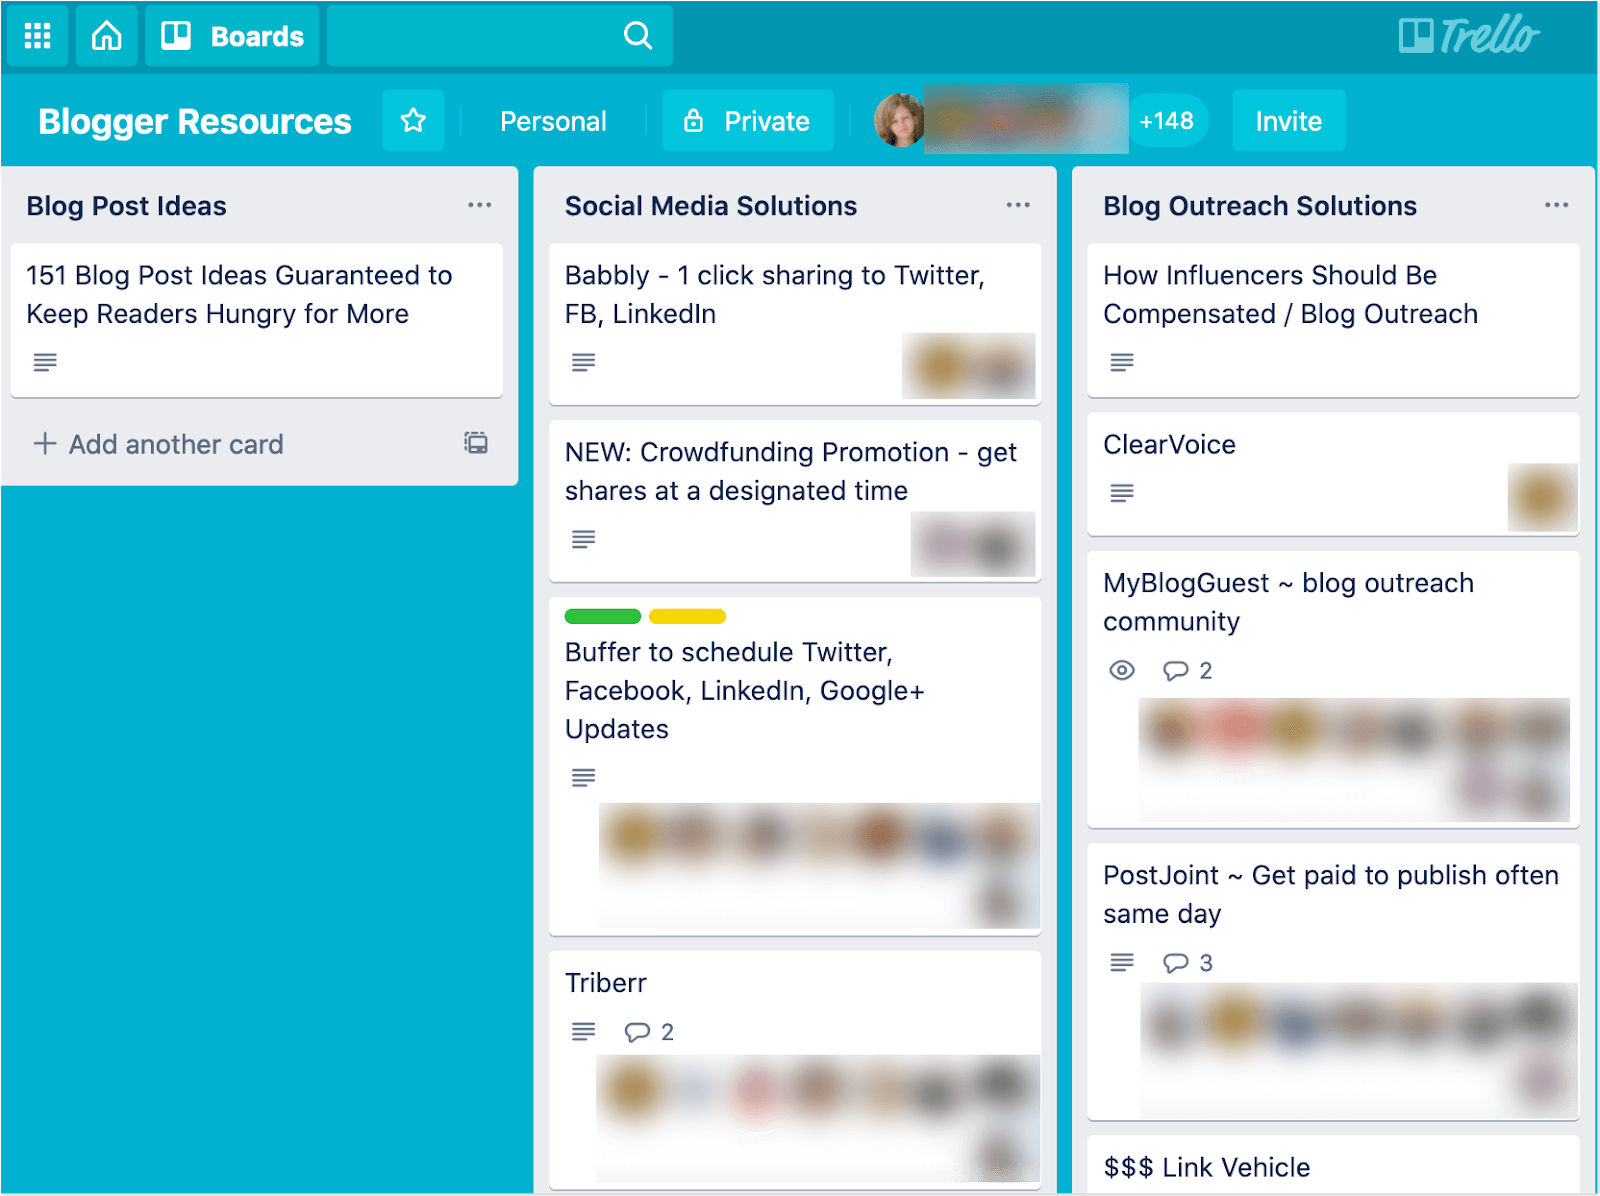 Blogger resources from Trello